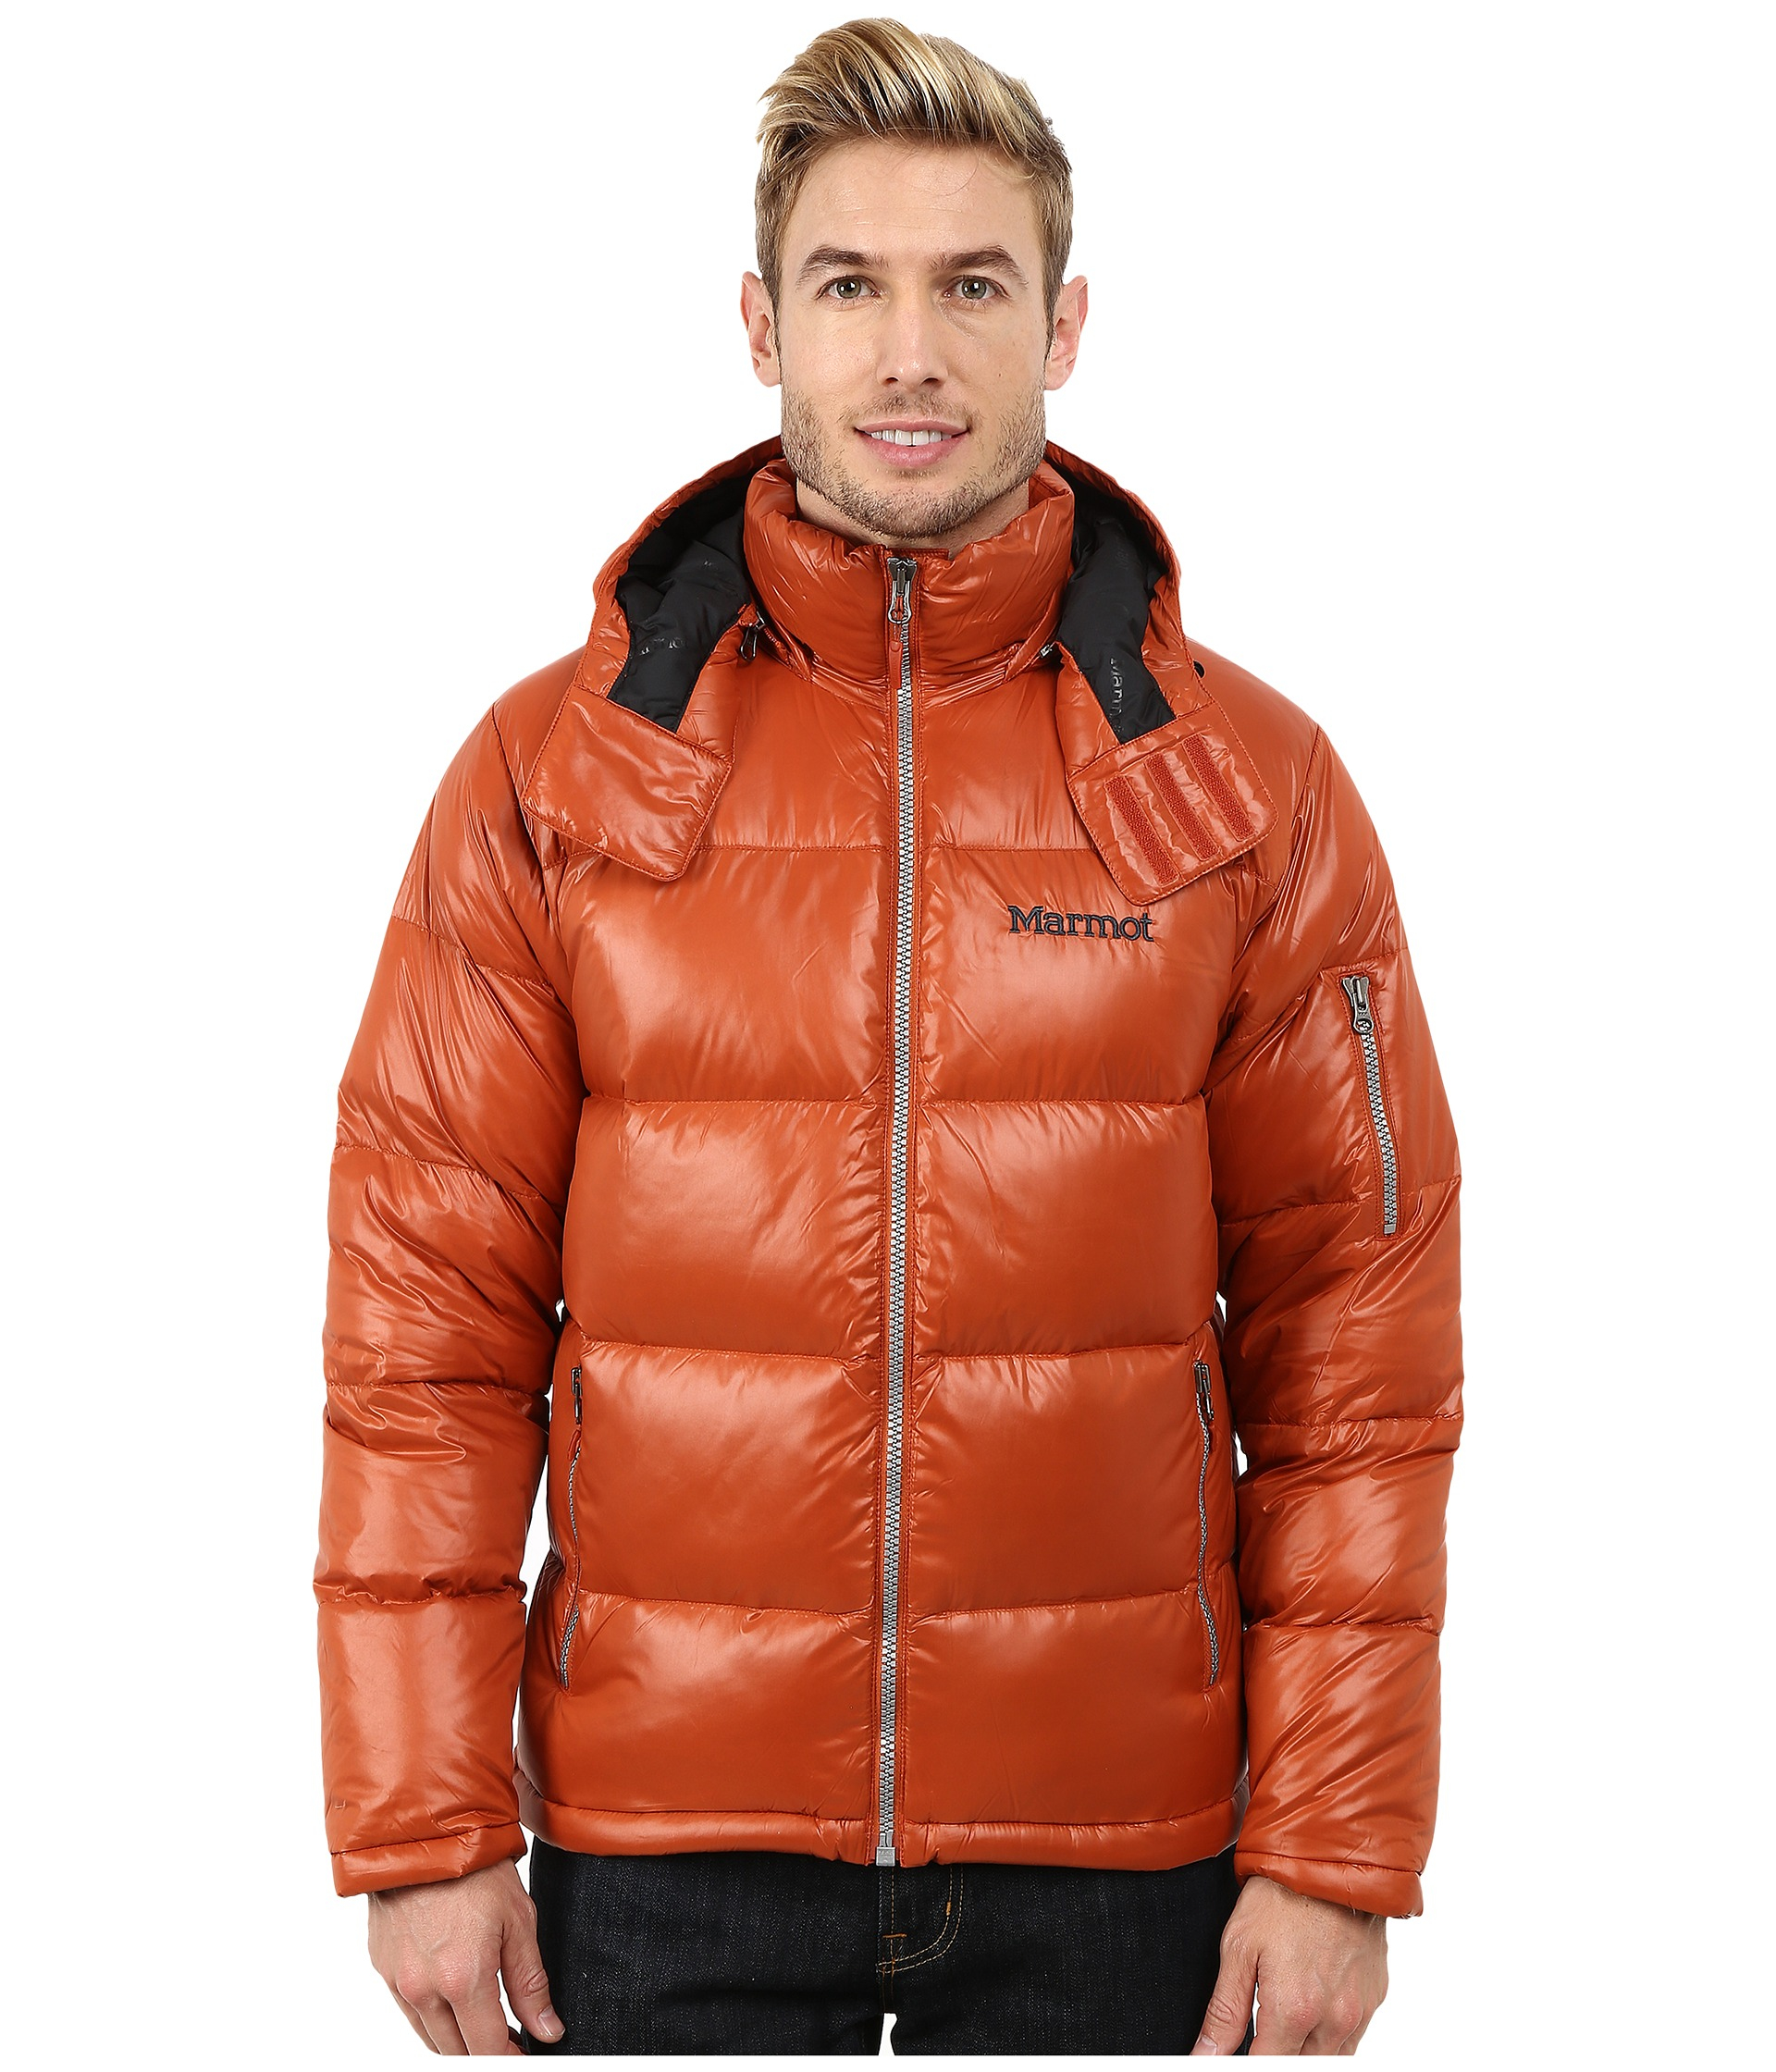 Lyst - Marmot Stockholm Jacket in Orange for Men b8e7110fa17a